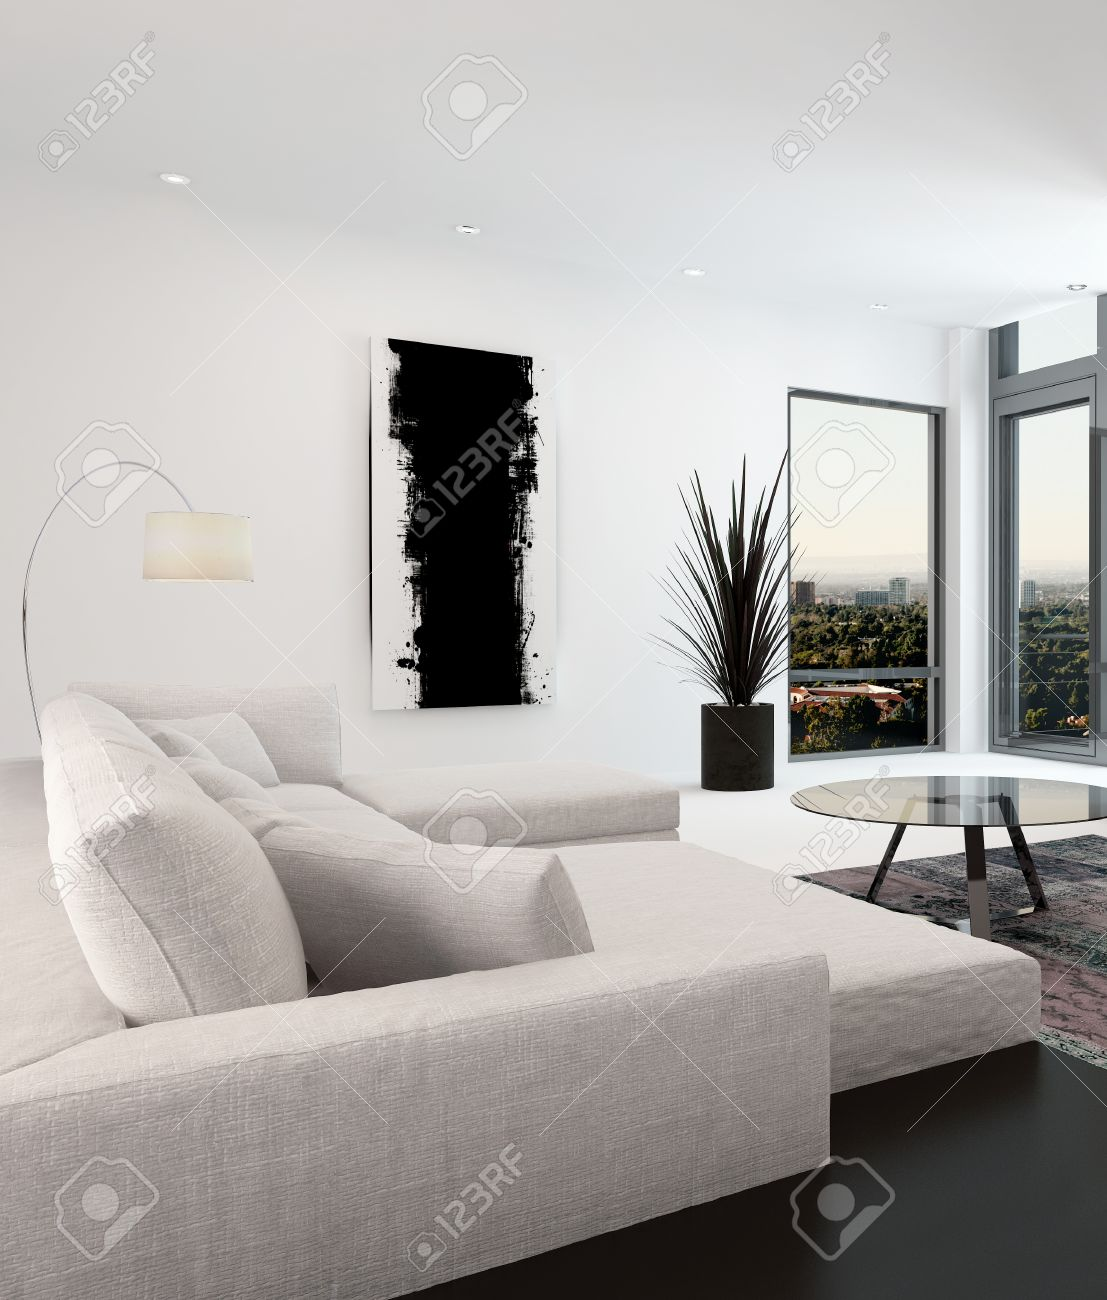 For Black And White Living Room White And Black Living Room Interior With A Close Up View Of